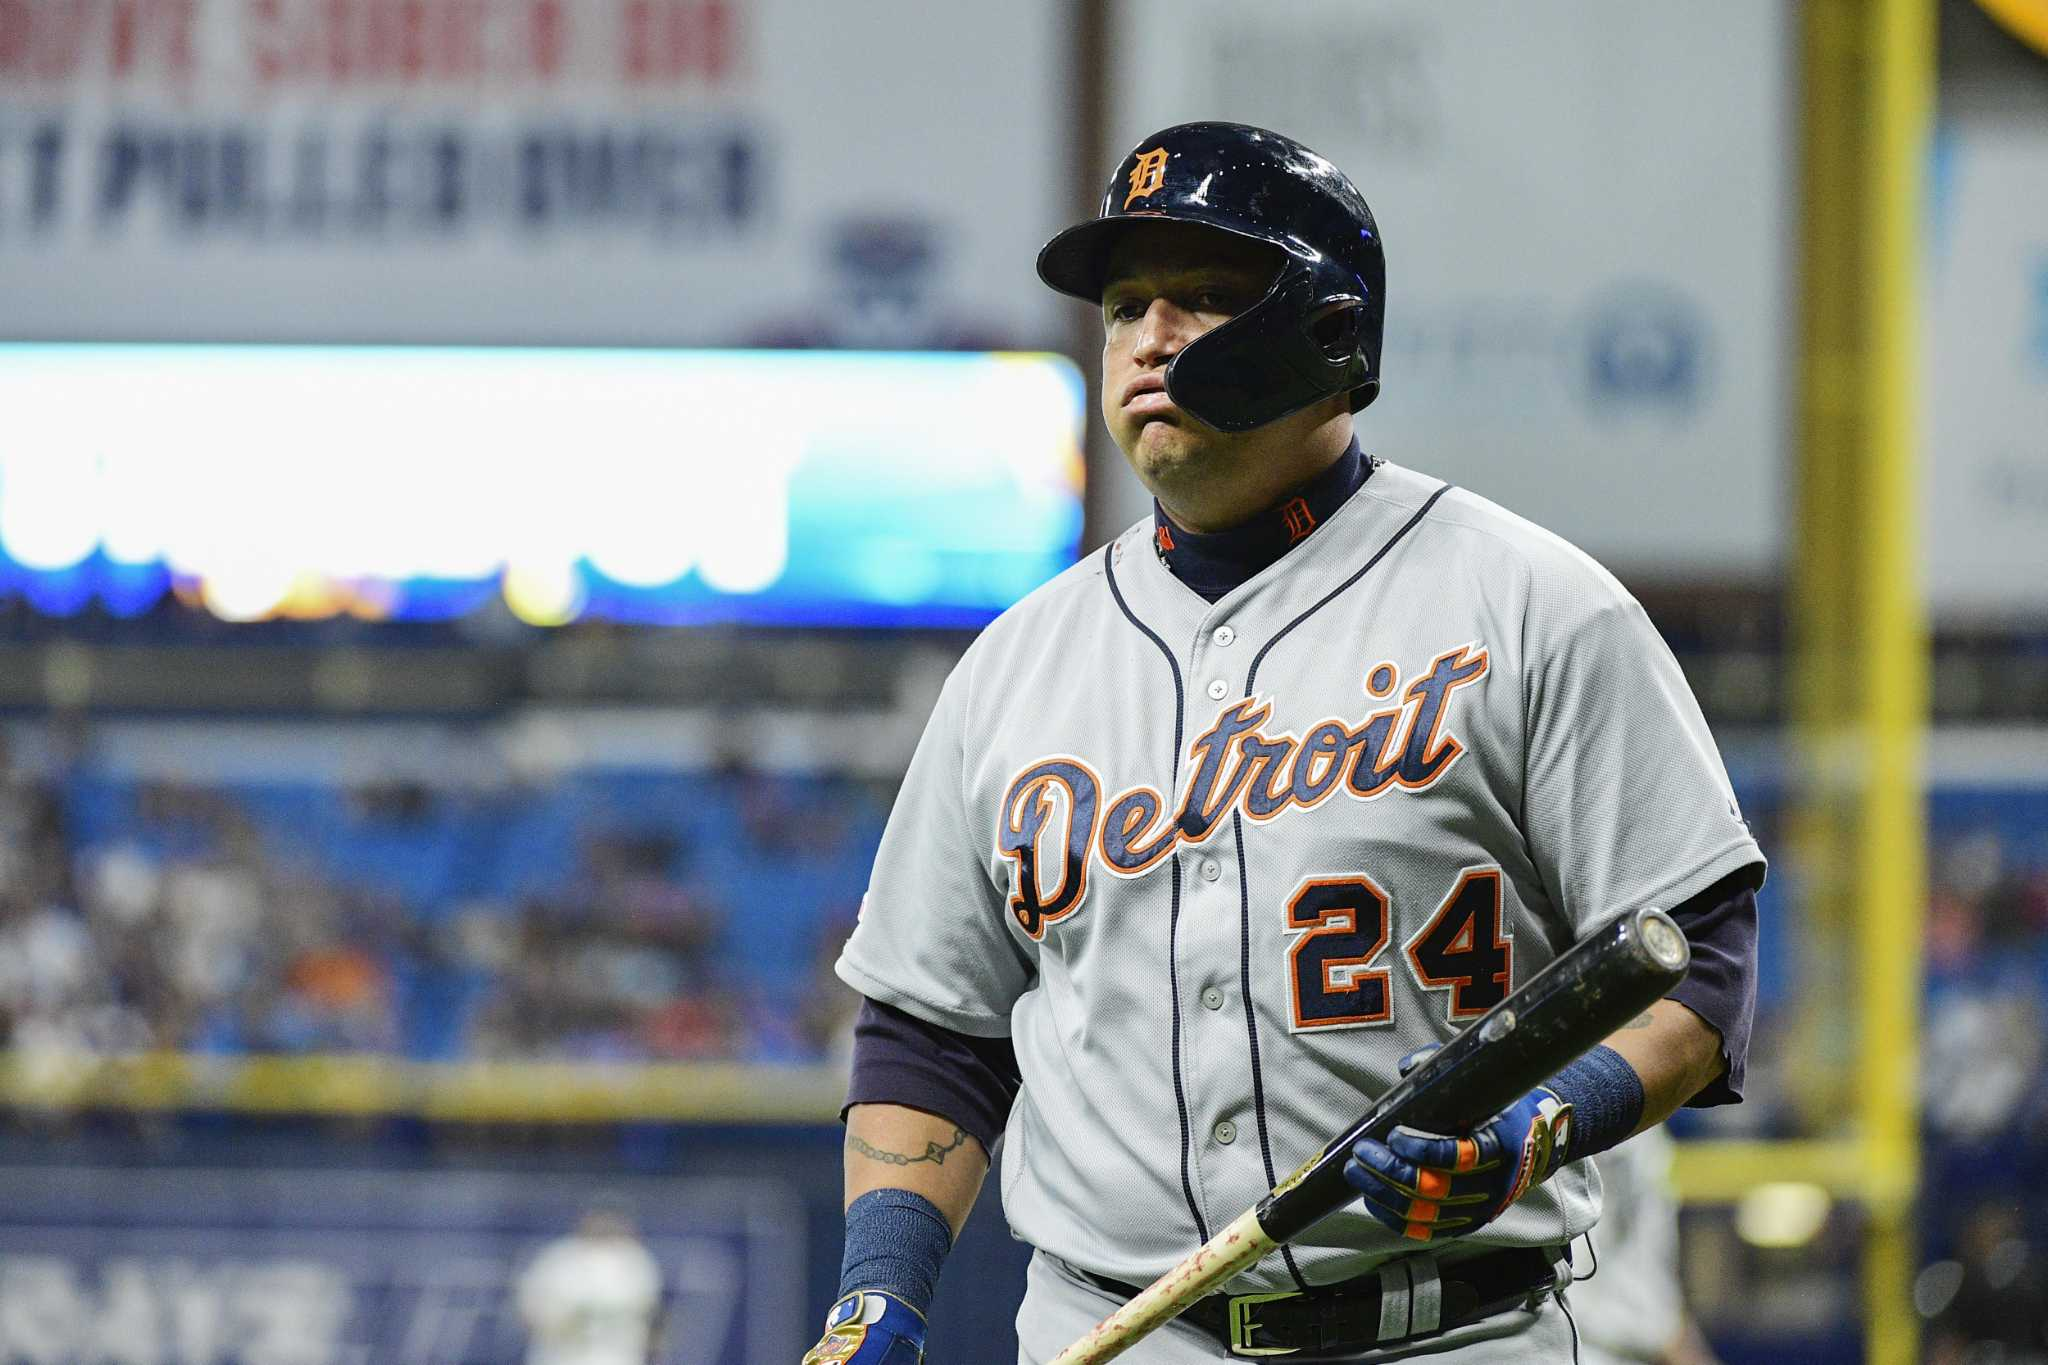 On deck: Detroit Tigers at Astros